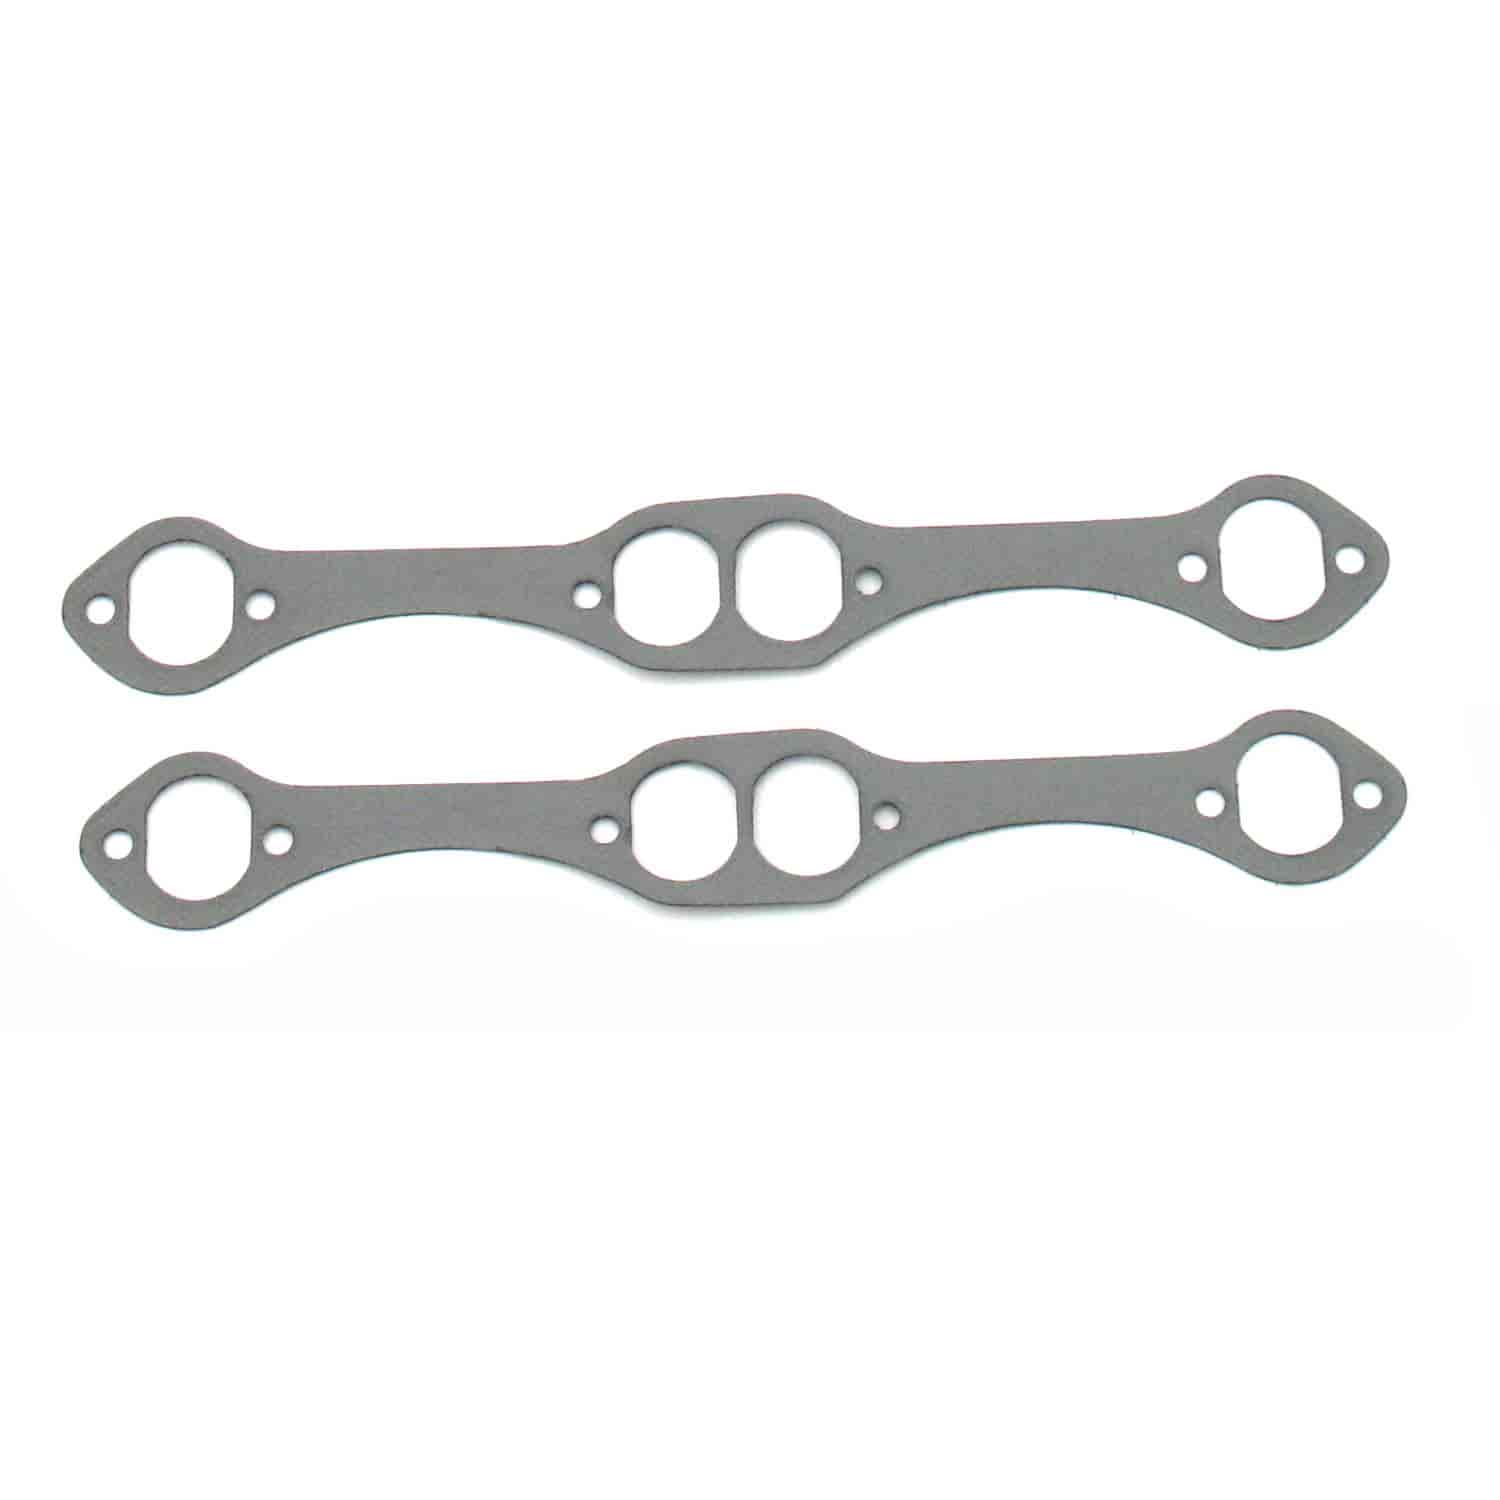 Patriot Exhaust H7585 - Patriot Exhaust Header Flange Gaskets